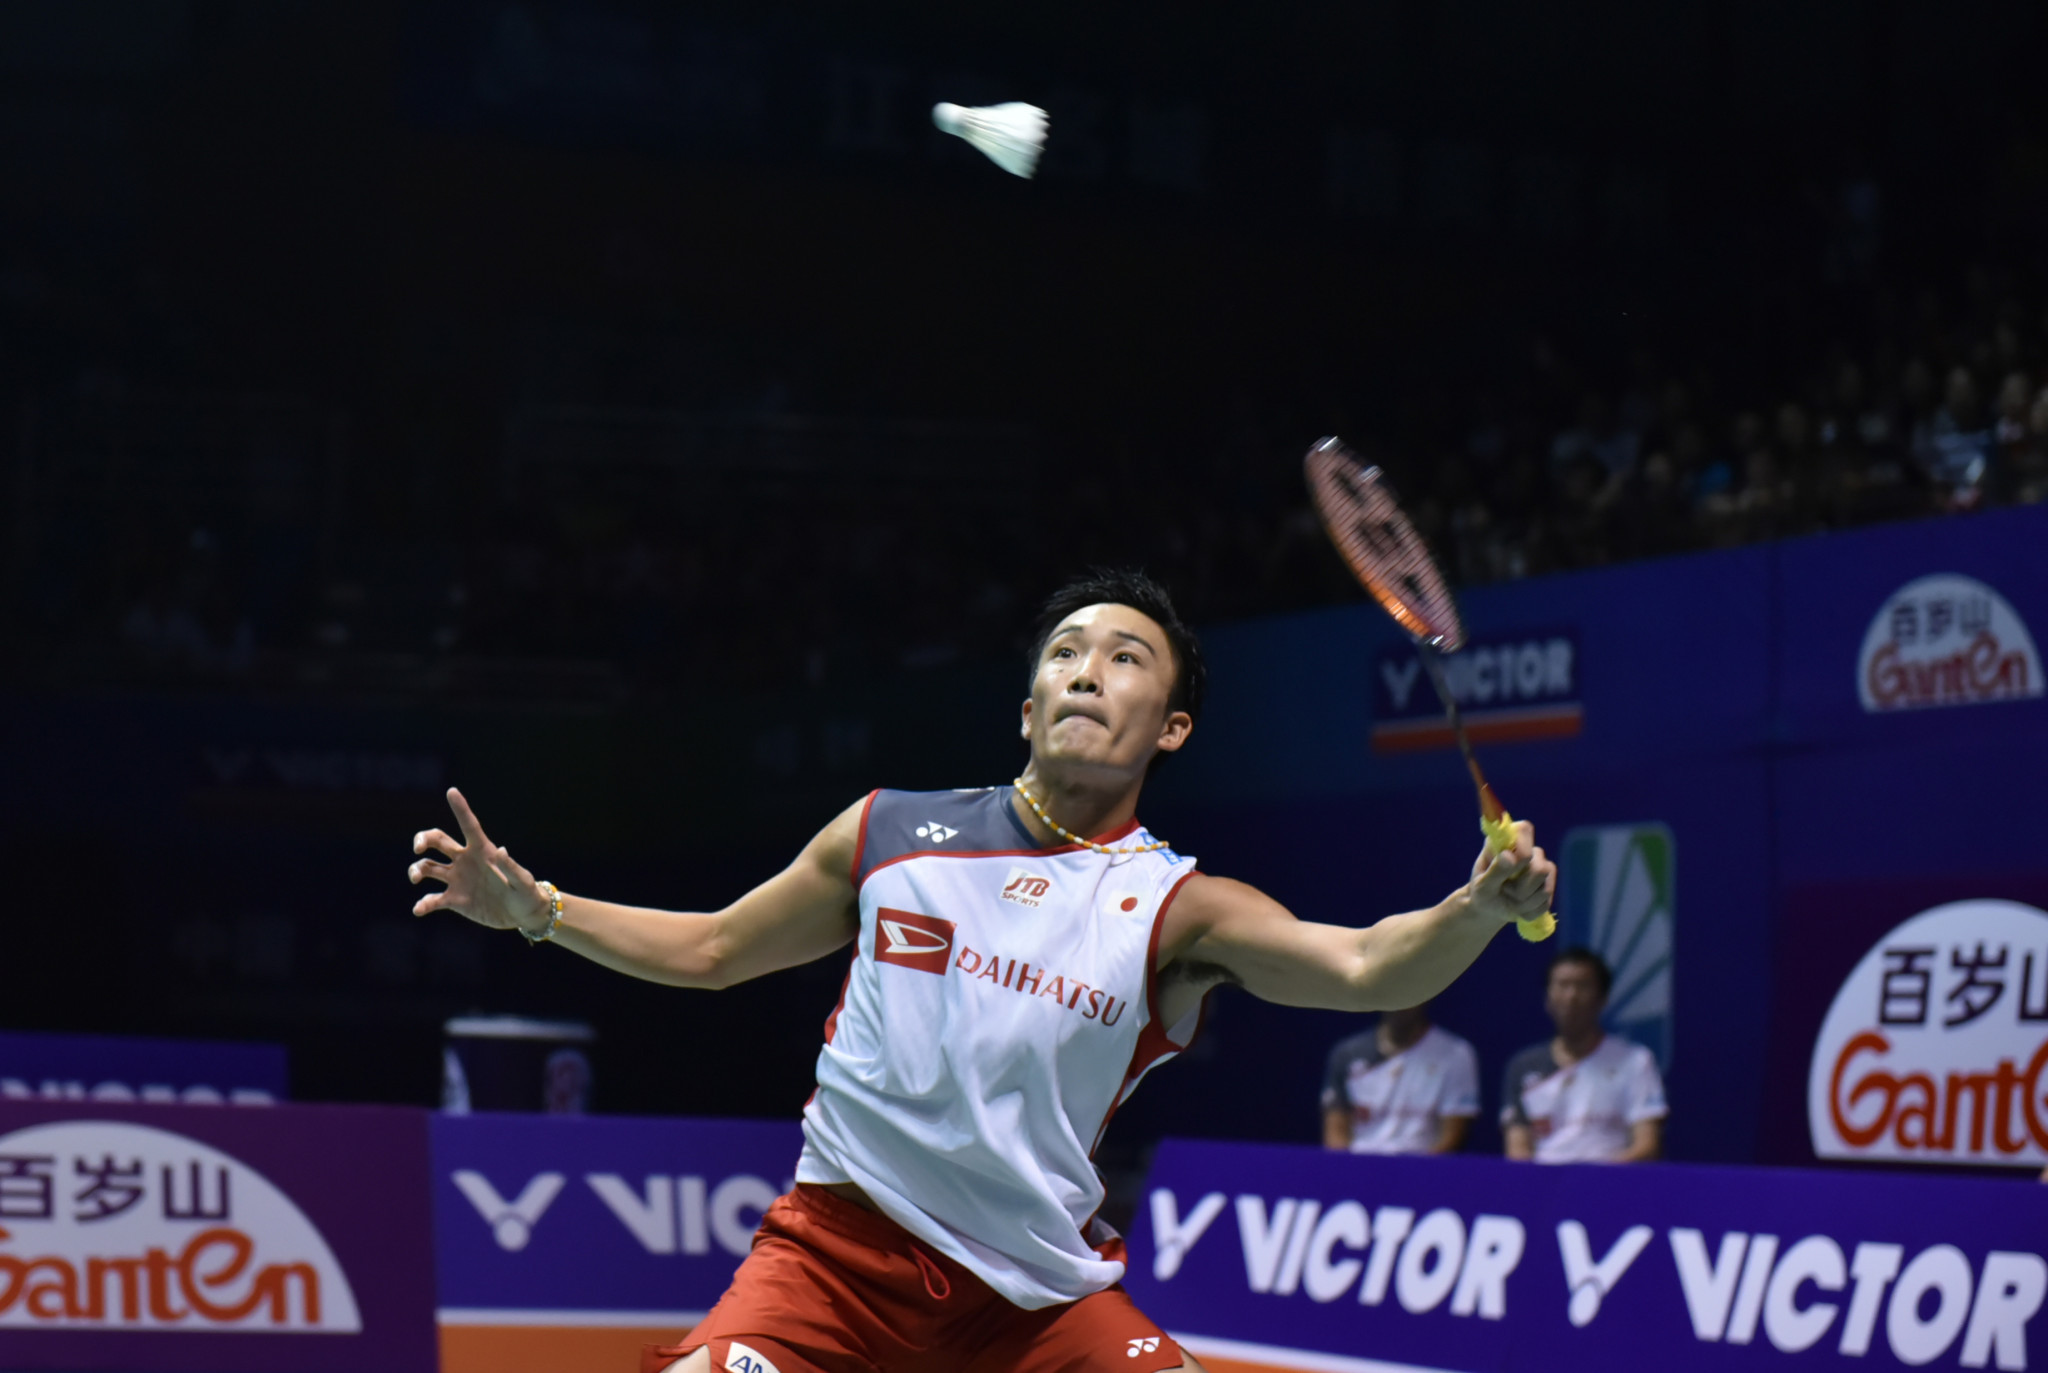 World champion Kento Momota eased through to the semi-finals of the BWF Denmark Open with a straight-games victory over Thailand's Khosit Phetpradab in Odense today ©Getty Images